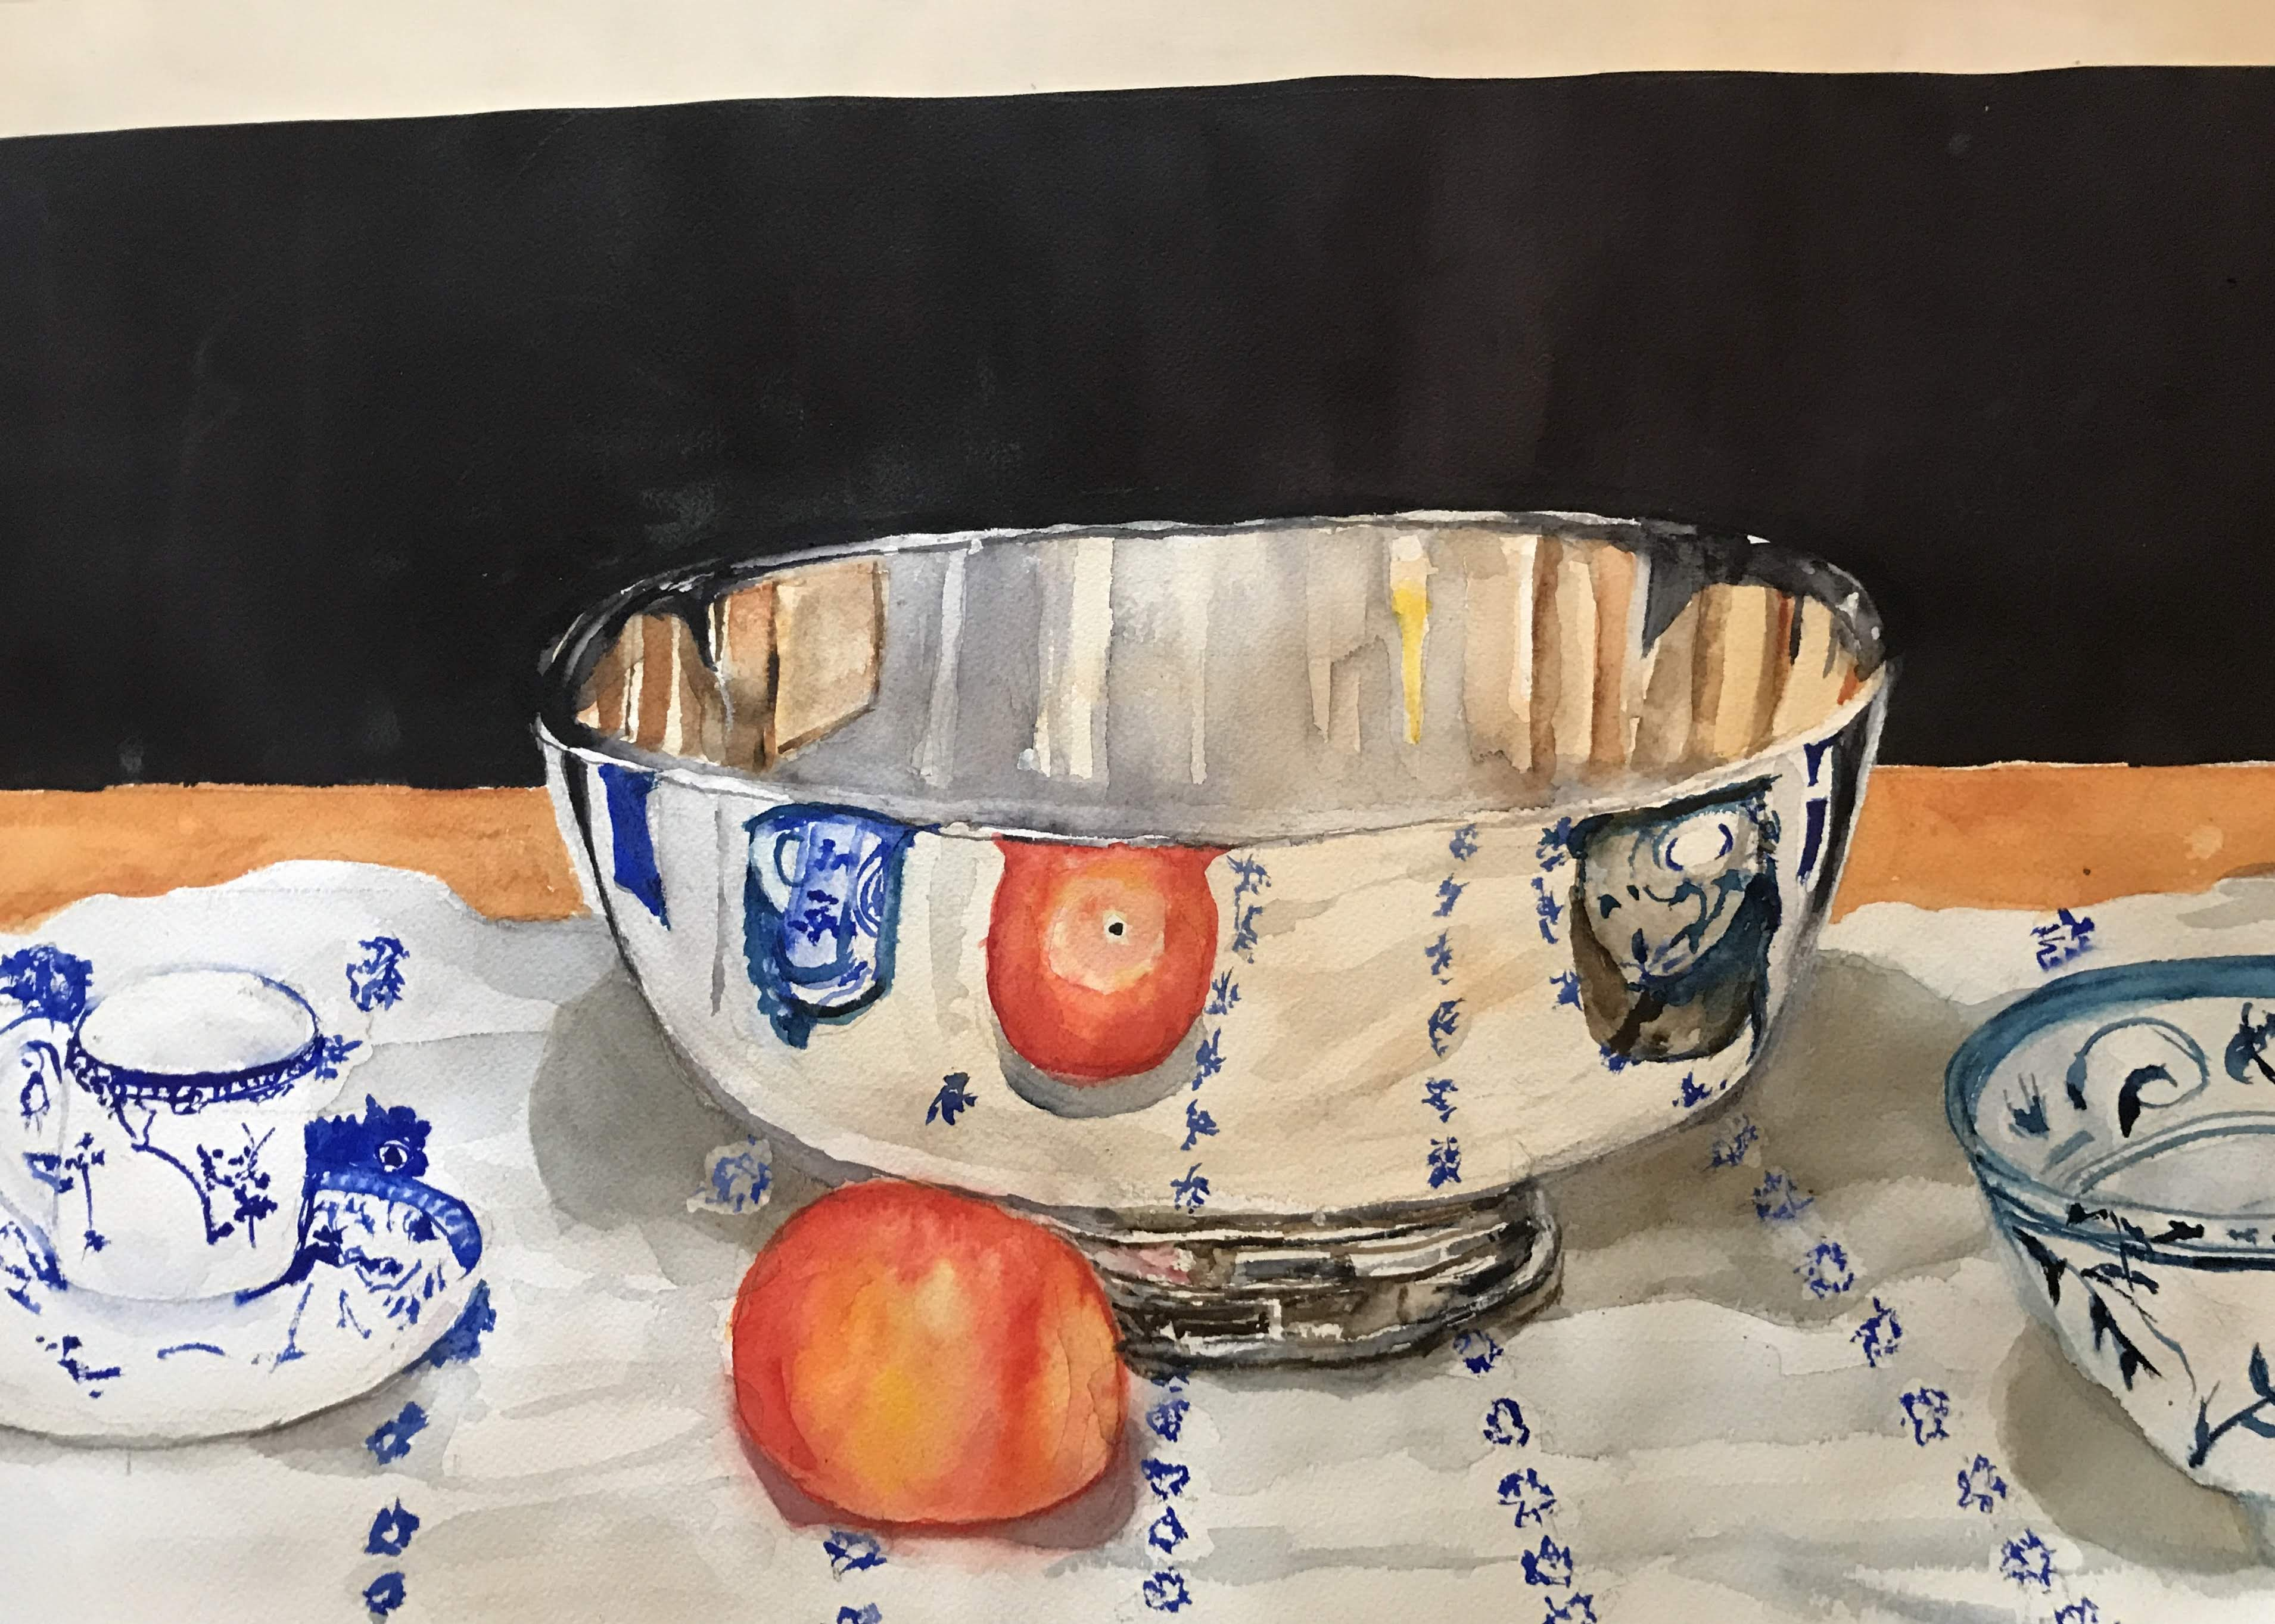 Oil painting of a silver bowl